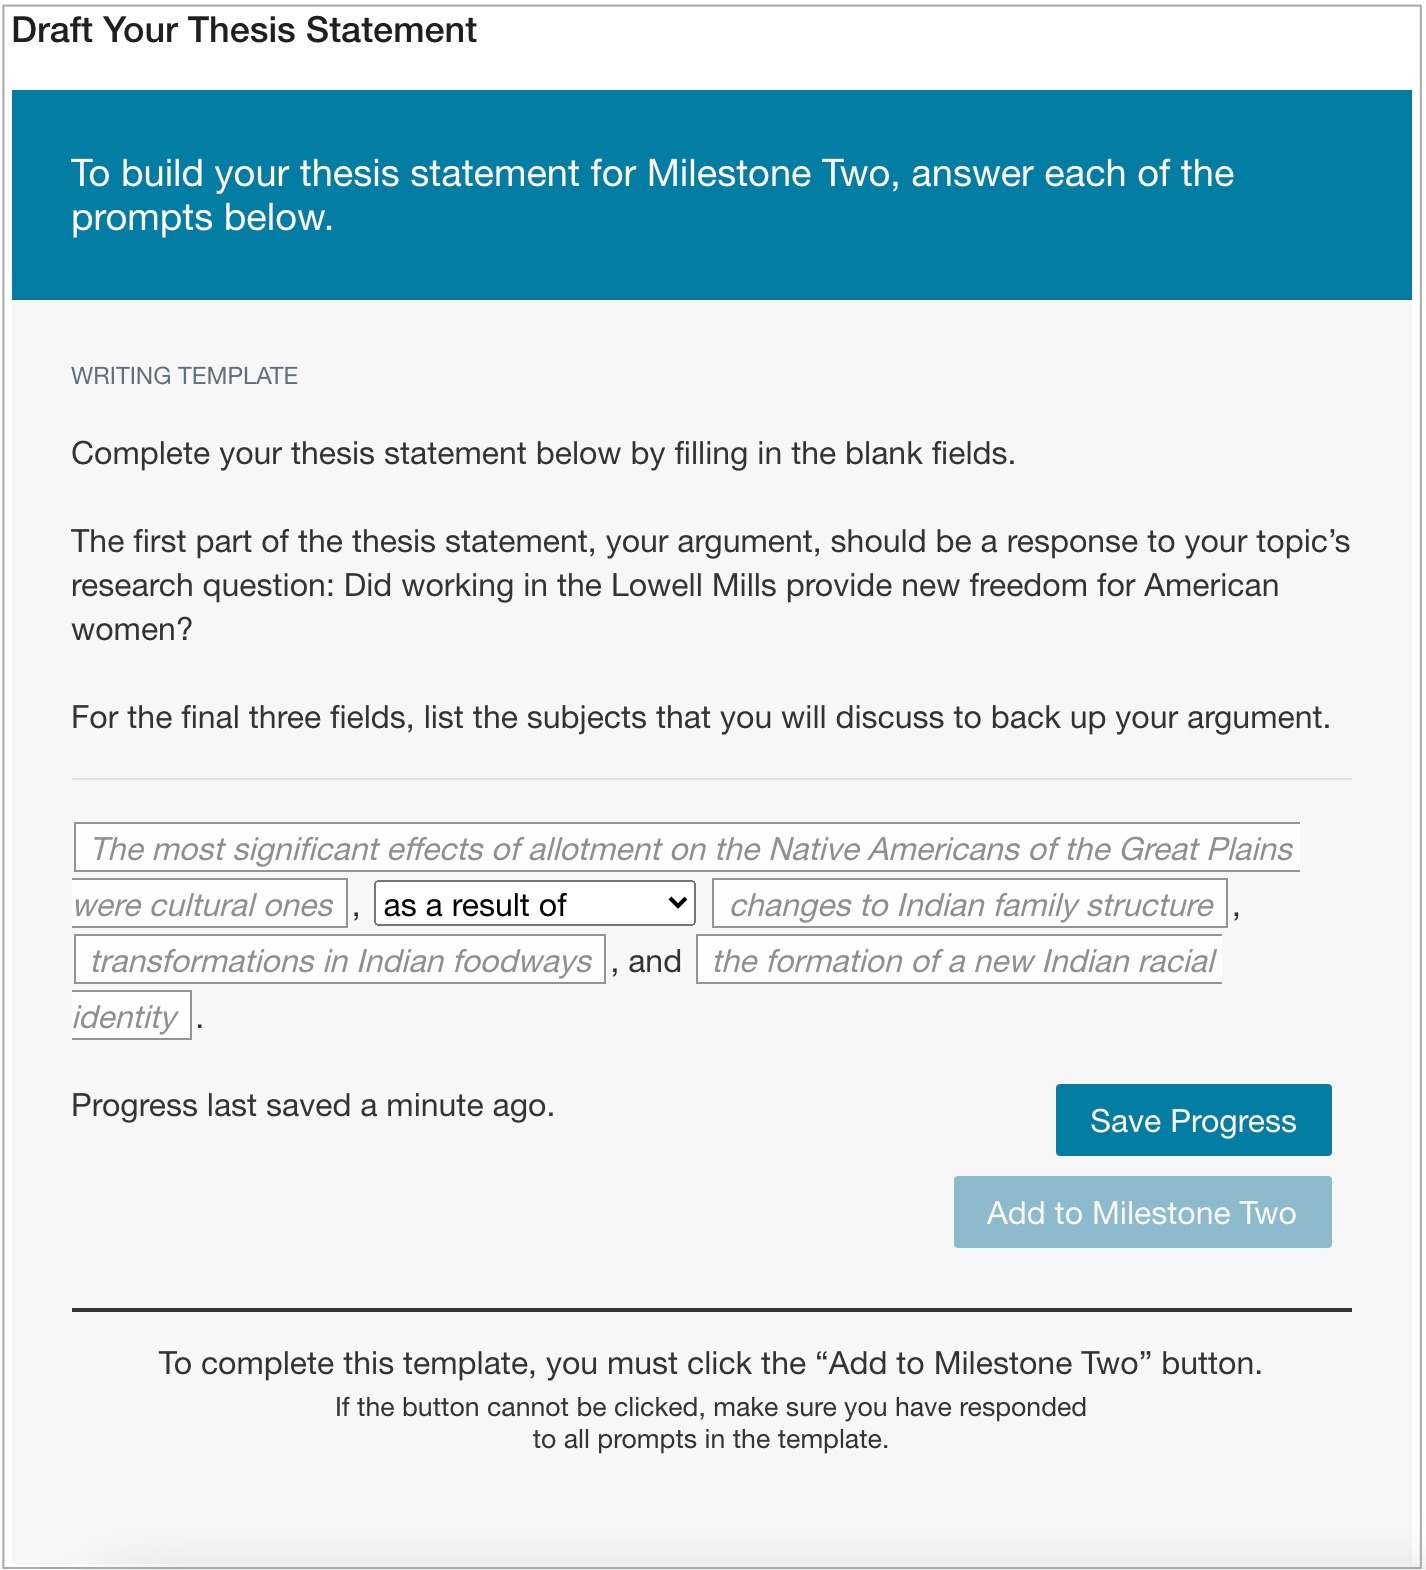 """Writing template with """"Save"""" button available but """"Add to Milestone Two"""" button not clickable since the writing template has not been filled out."""